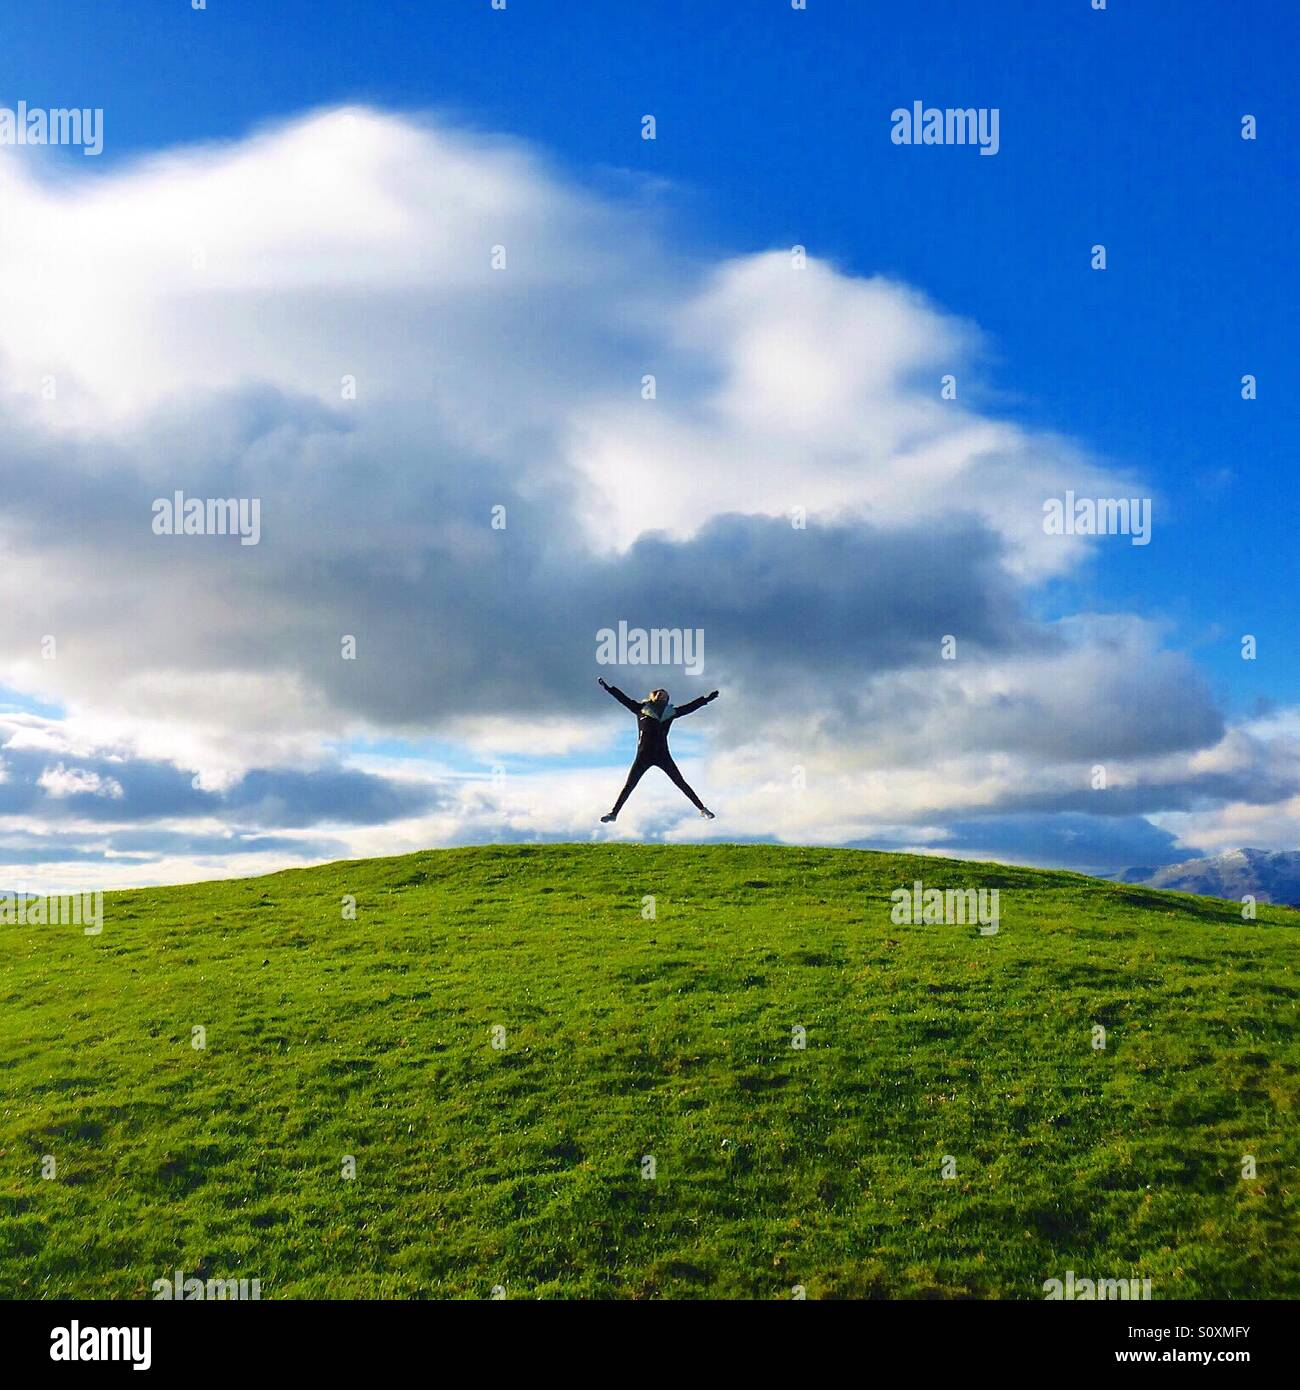 Photo taken walking up hills in the beautiful English countryside, near lake Windermere, With a happy individual - Stock Image